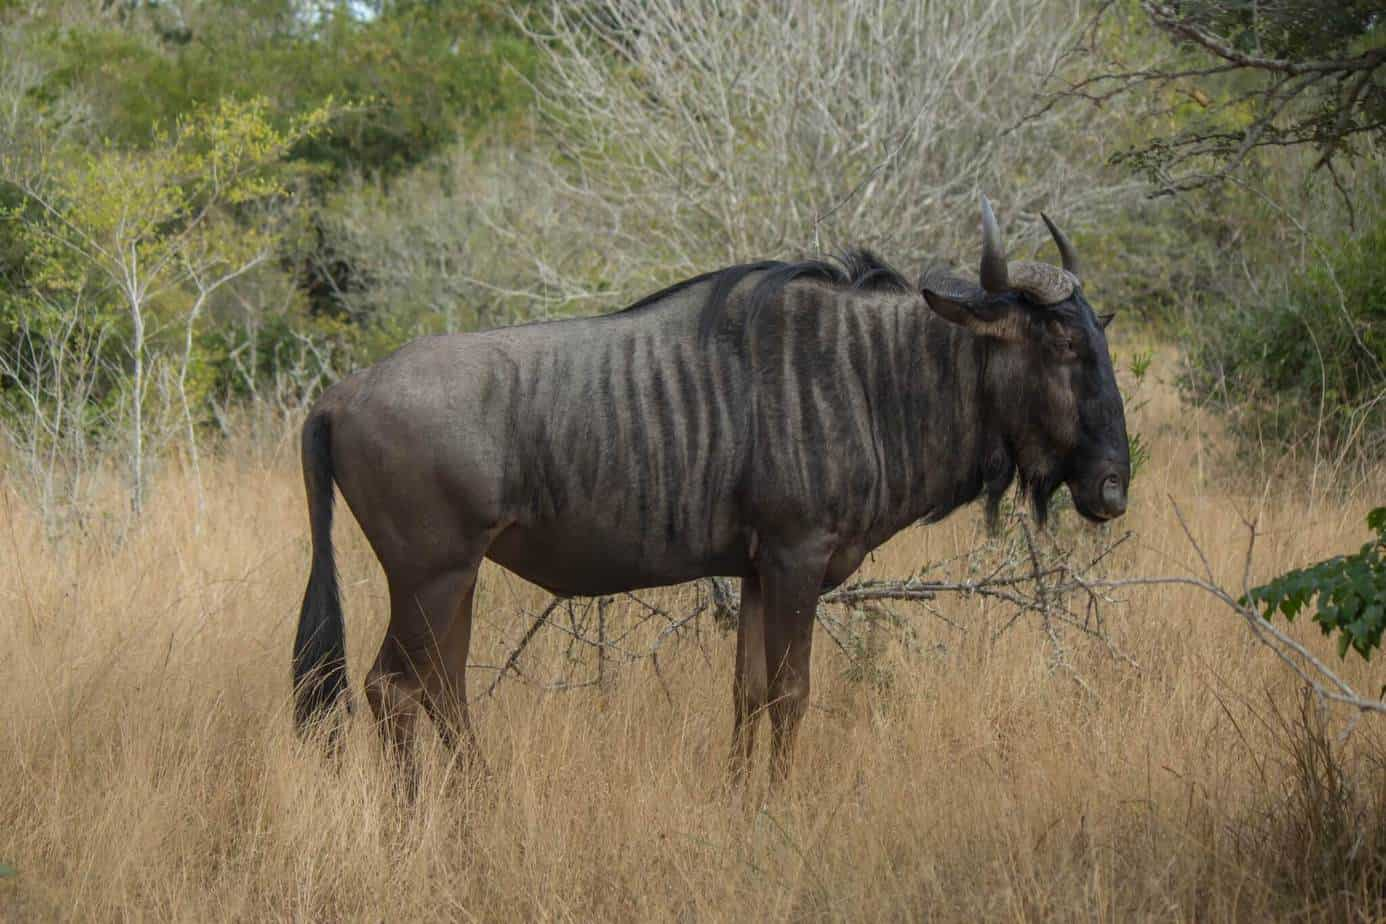 IMG 8338 - South Africa